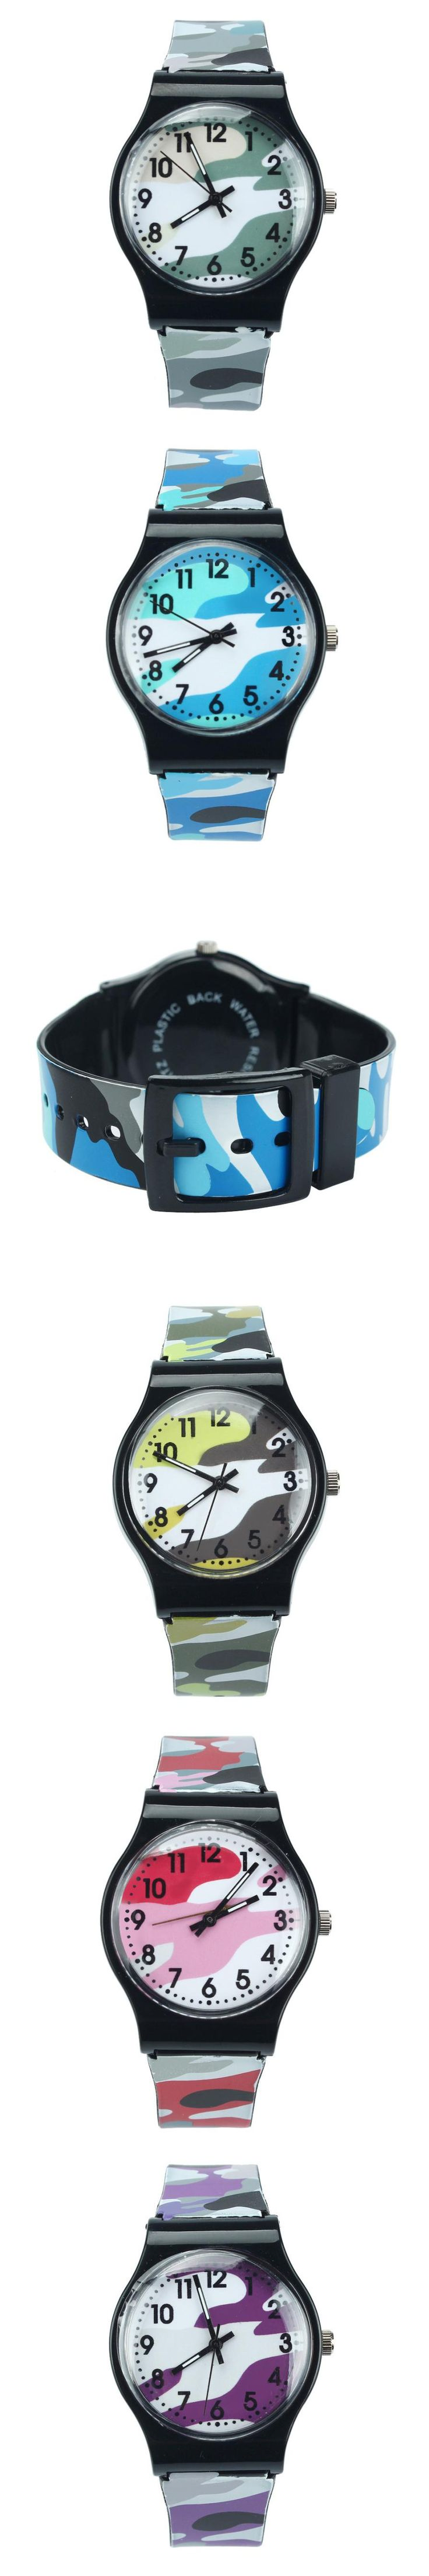 Feitong Top Quality Camouflage Children Students Quartz Watch Hot Sale Kids Sport Wristwatch Boys Girls Military Style Watches $2.14